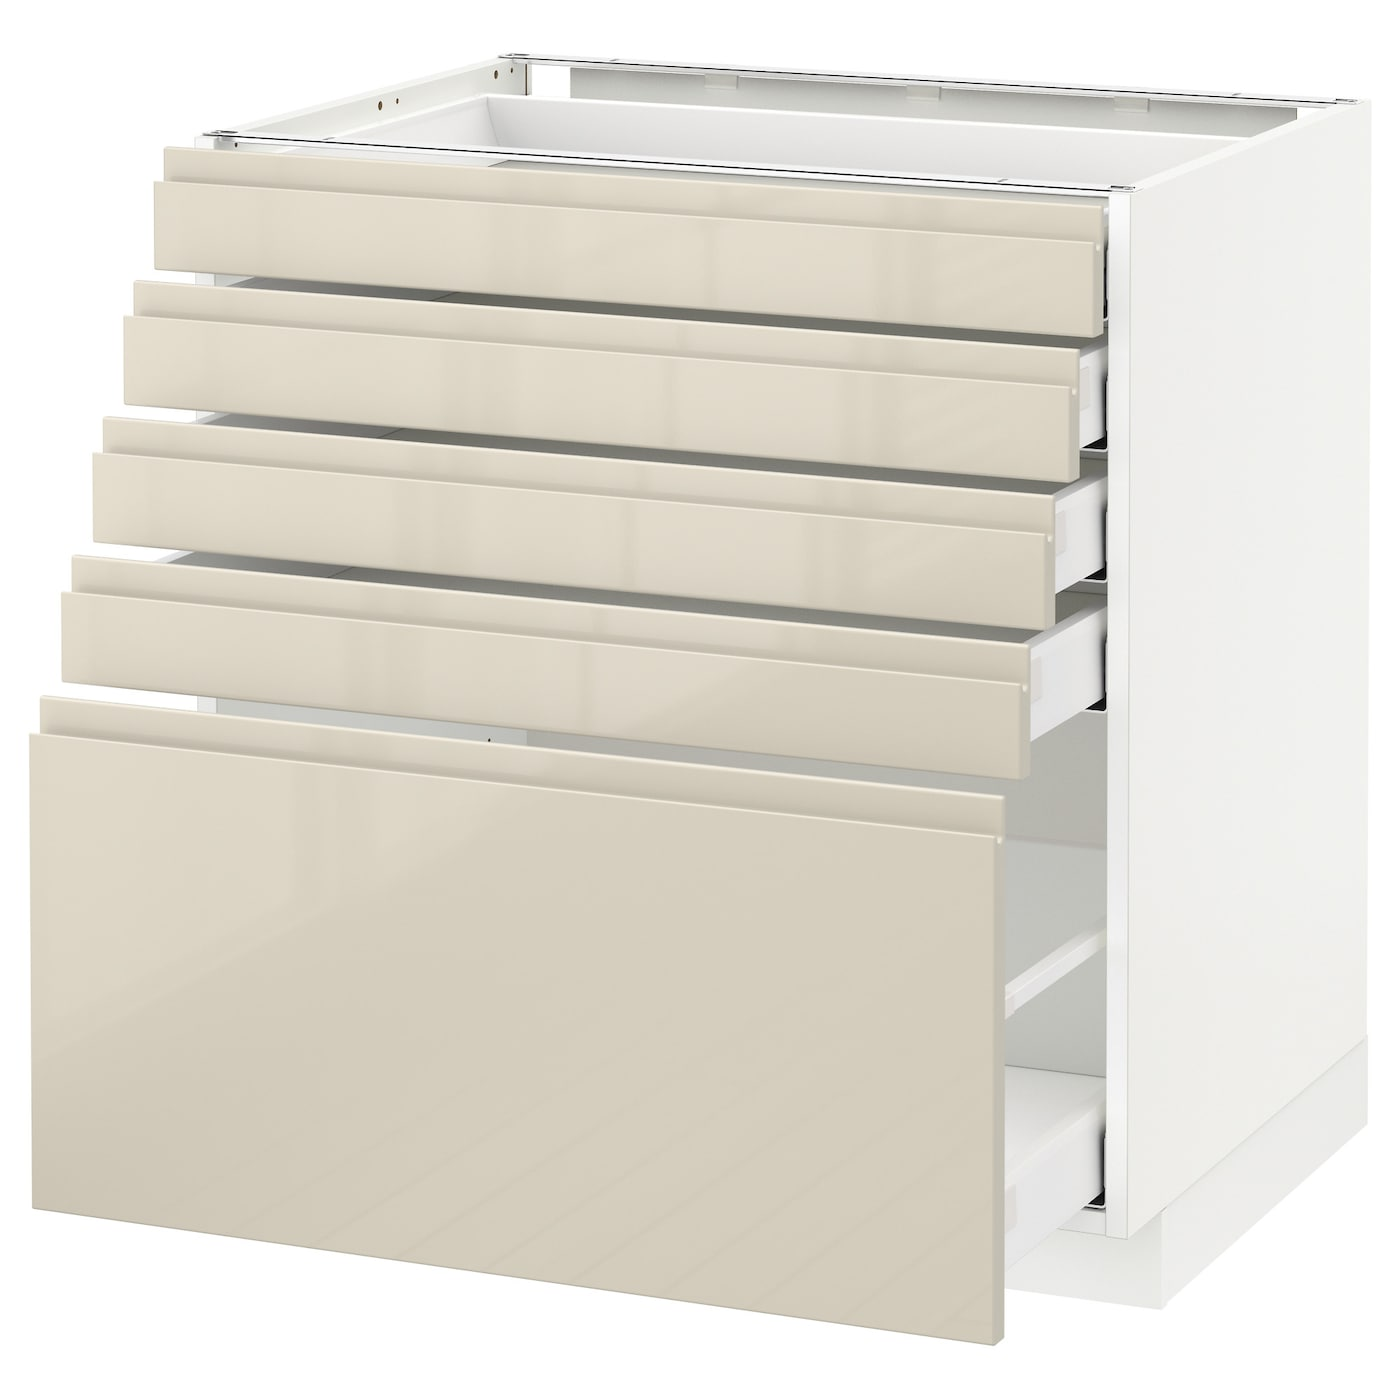 Metod Maximera Base Cabinet With 5 Drawers White Voxtorp High Gloss Light Beige 80x60 Cm Ikea